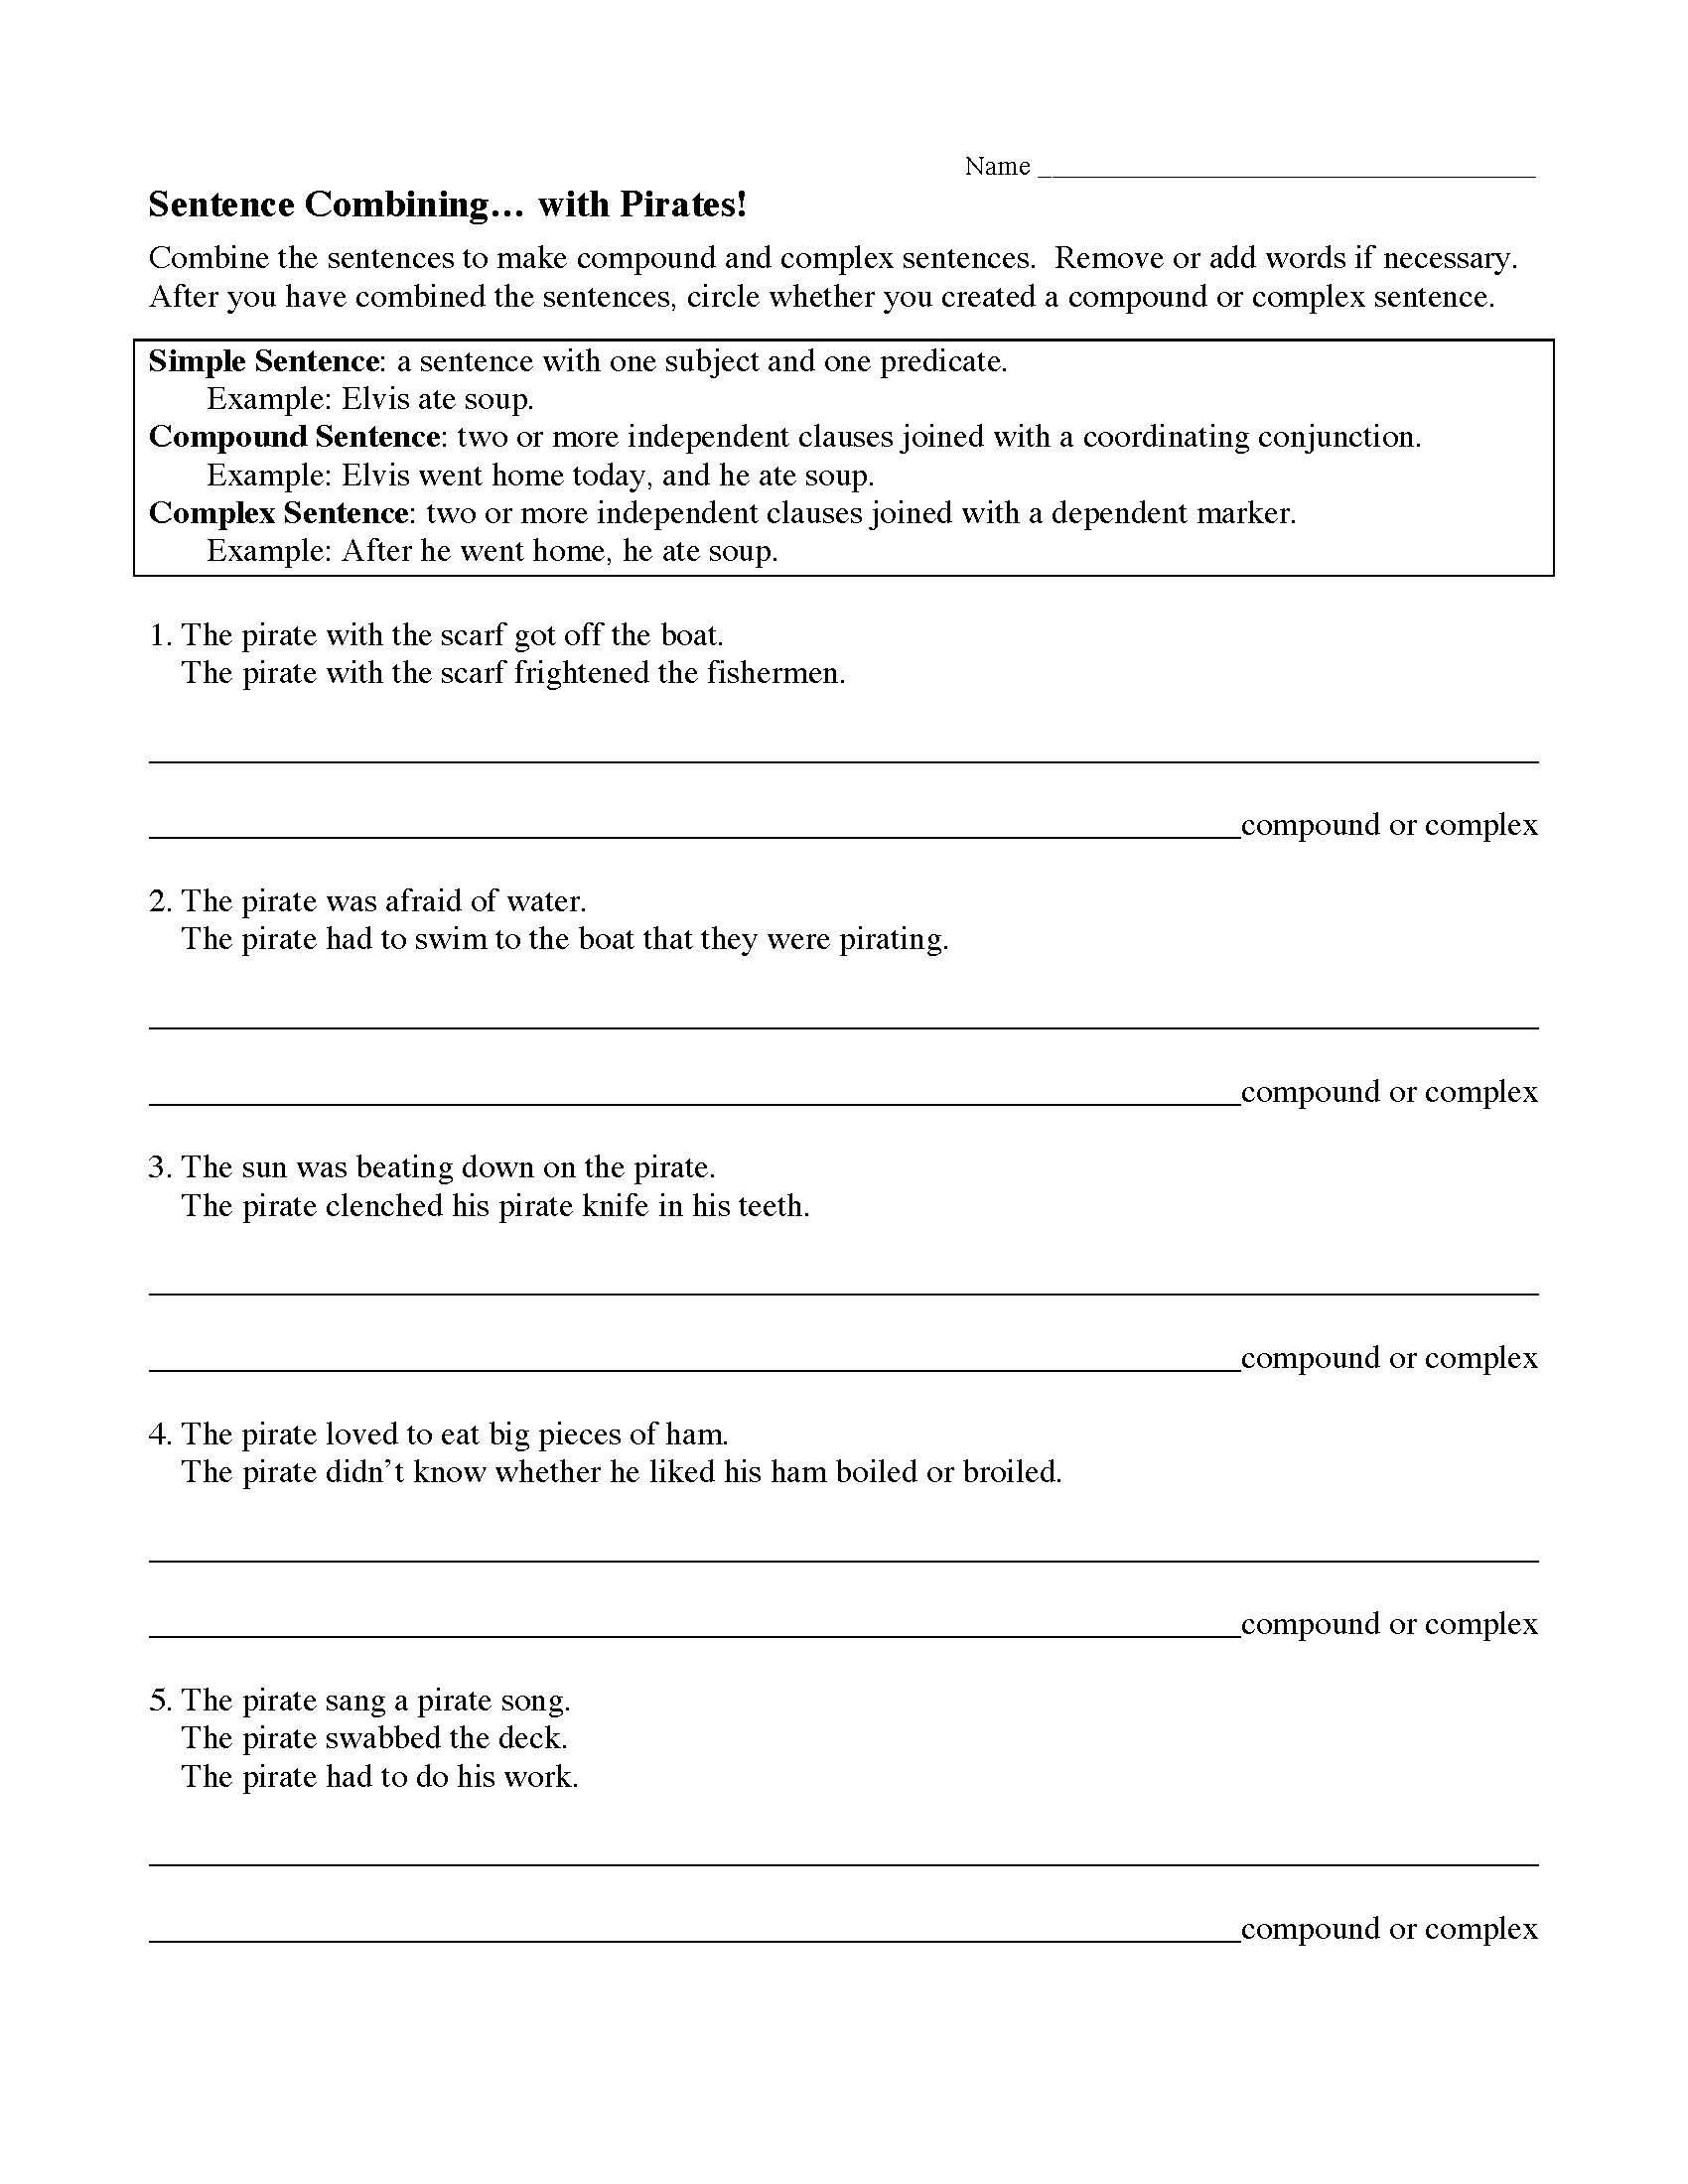 Compound Sentences Worksheet with Answers Sentences Bining with Pirates Worksheet